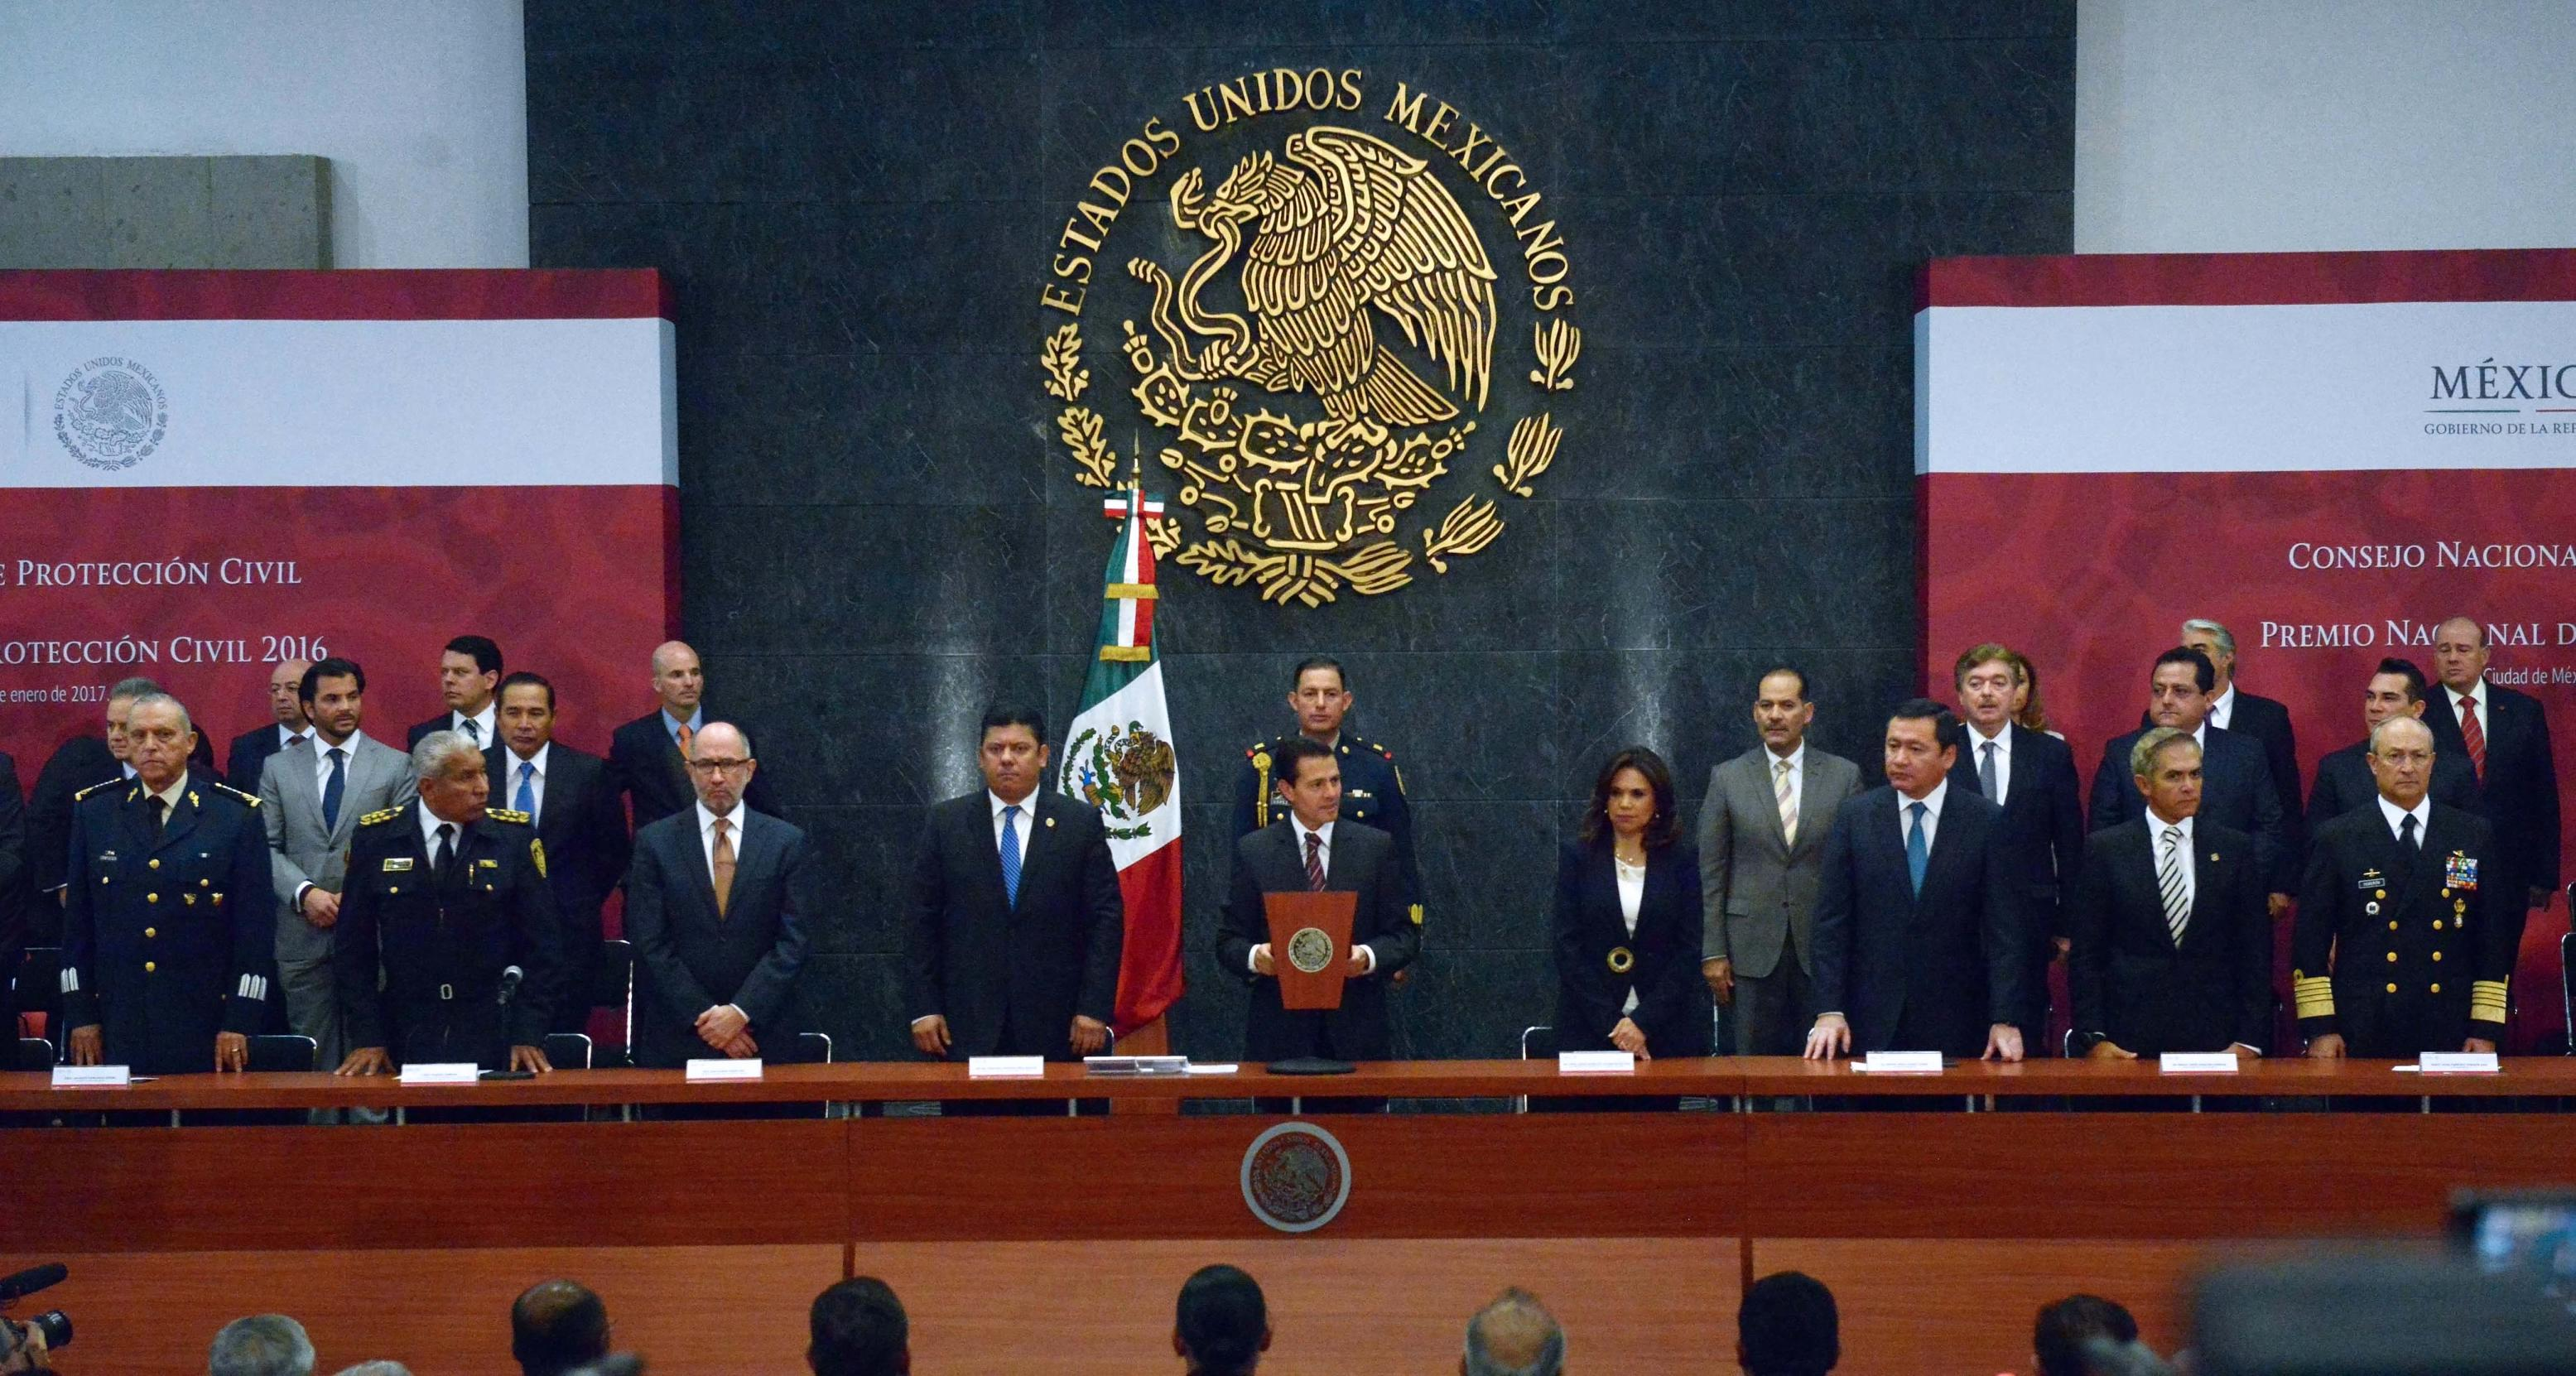 President Enrique Peña Nieto led the Regular Session of the National Council of Civil Protection and the ceremony for the presentation of the National Award for Civil Protection 2016.